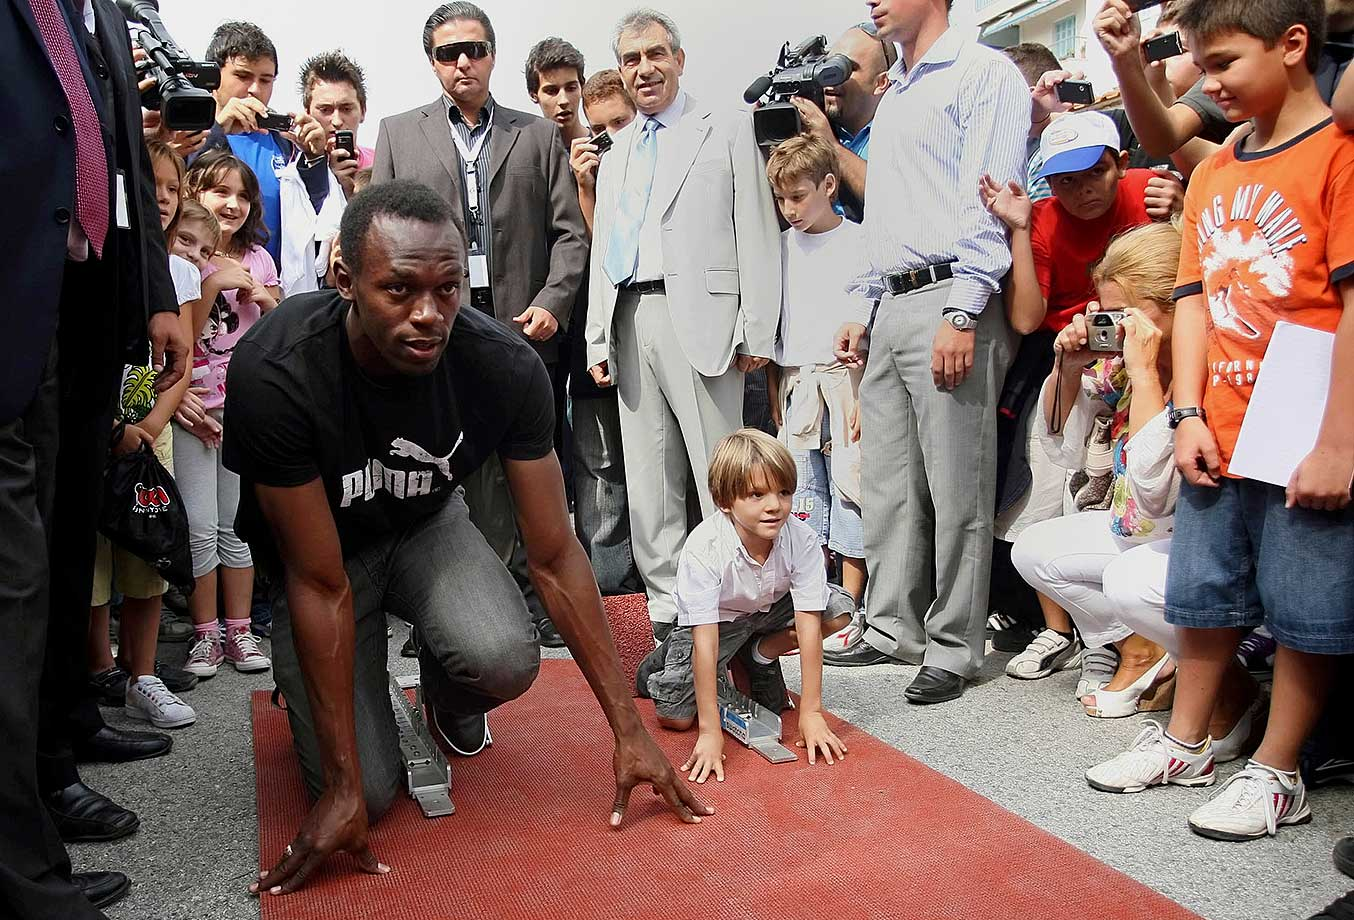 Usain Bolt lines up in a starting position alongside a young boy in Thessaloniki, Greece. Bolt competed in the 200m during the 2009 World Championships a couple days later, setting a track record of 19.68 and taking home a gold medal.